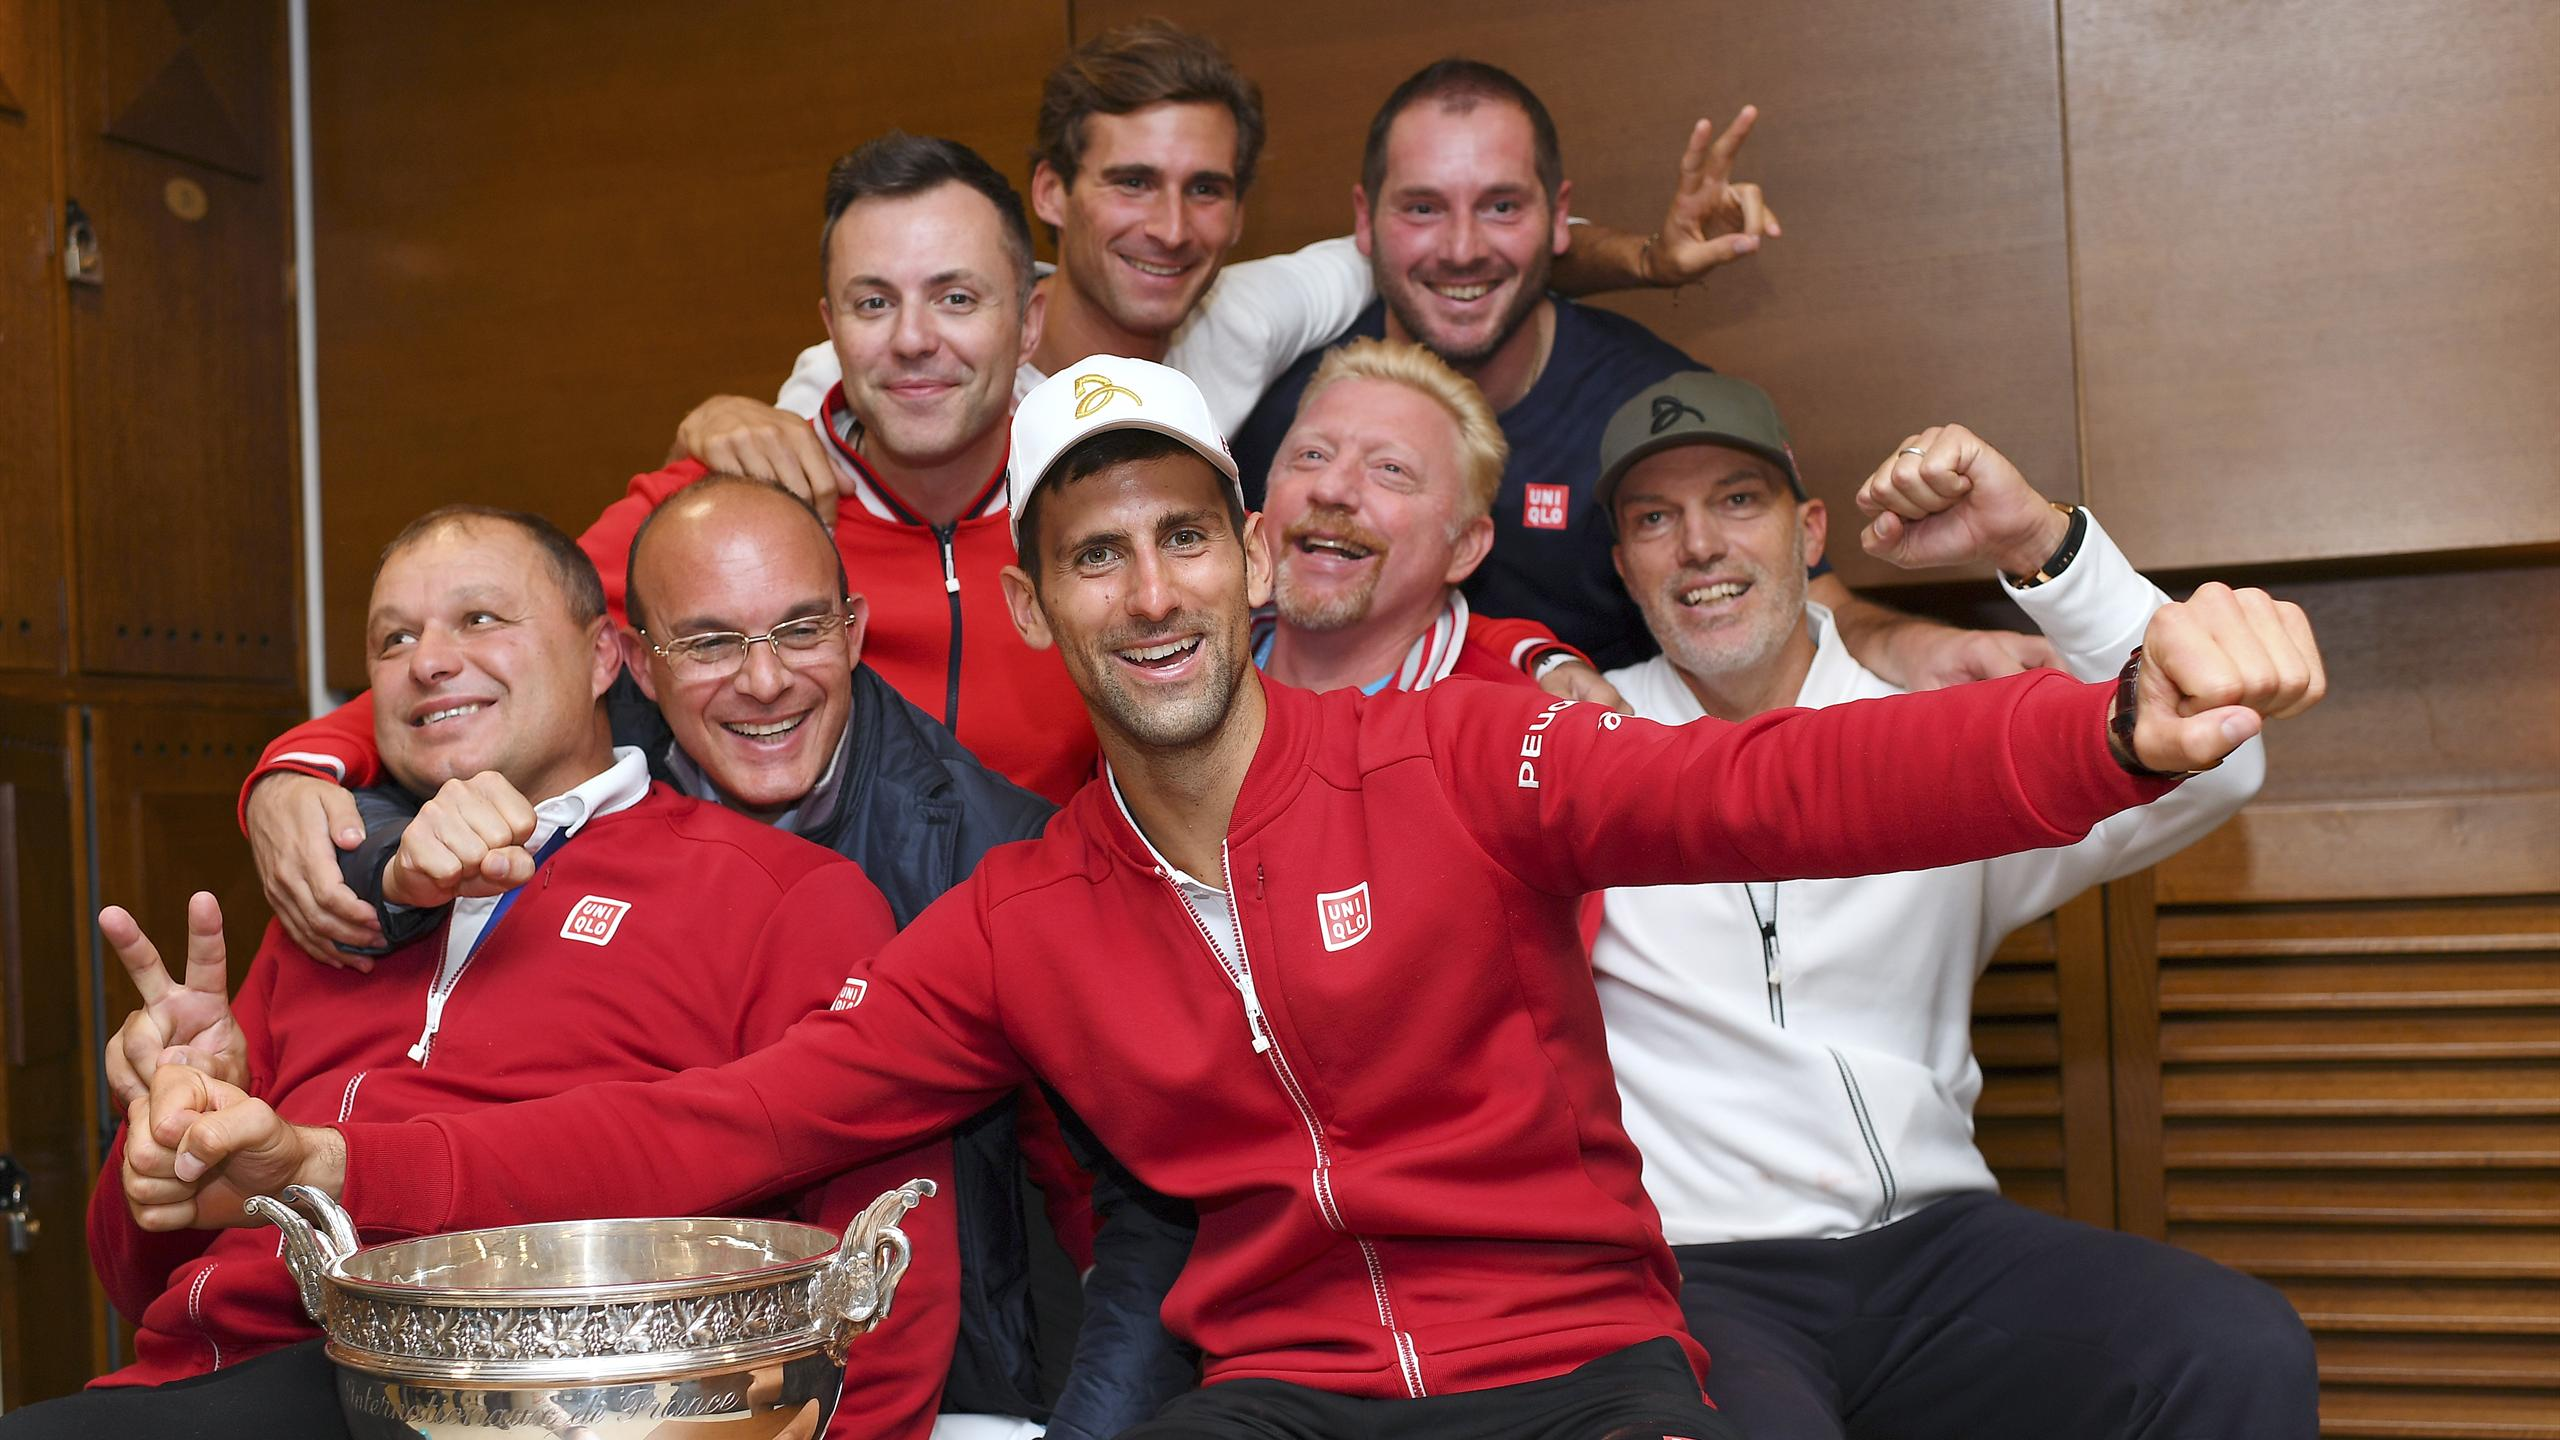 erbia's Novak Djokovic (C) posing with his trophy flanked by his coach former German tennis player Boris Becker (C-R) in the locker room after winning the men's final match against Britain's Andy Murray at the Roland Garros 2016 French Tennis Open in Pari